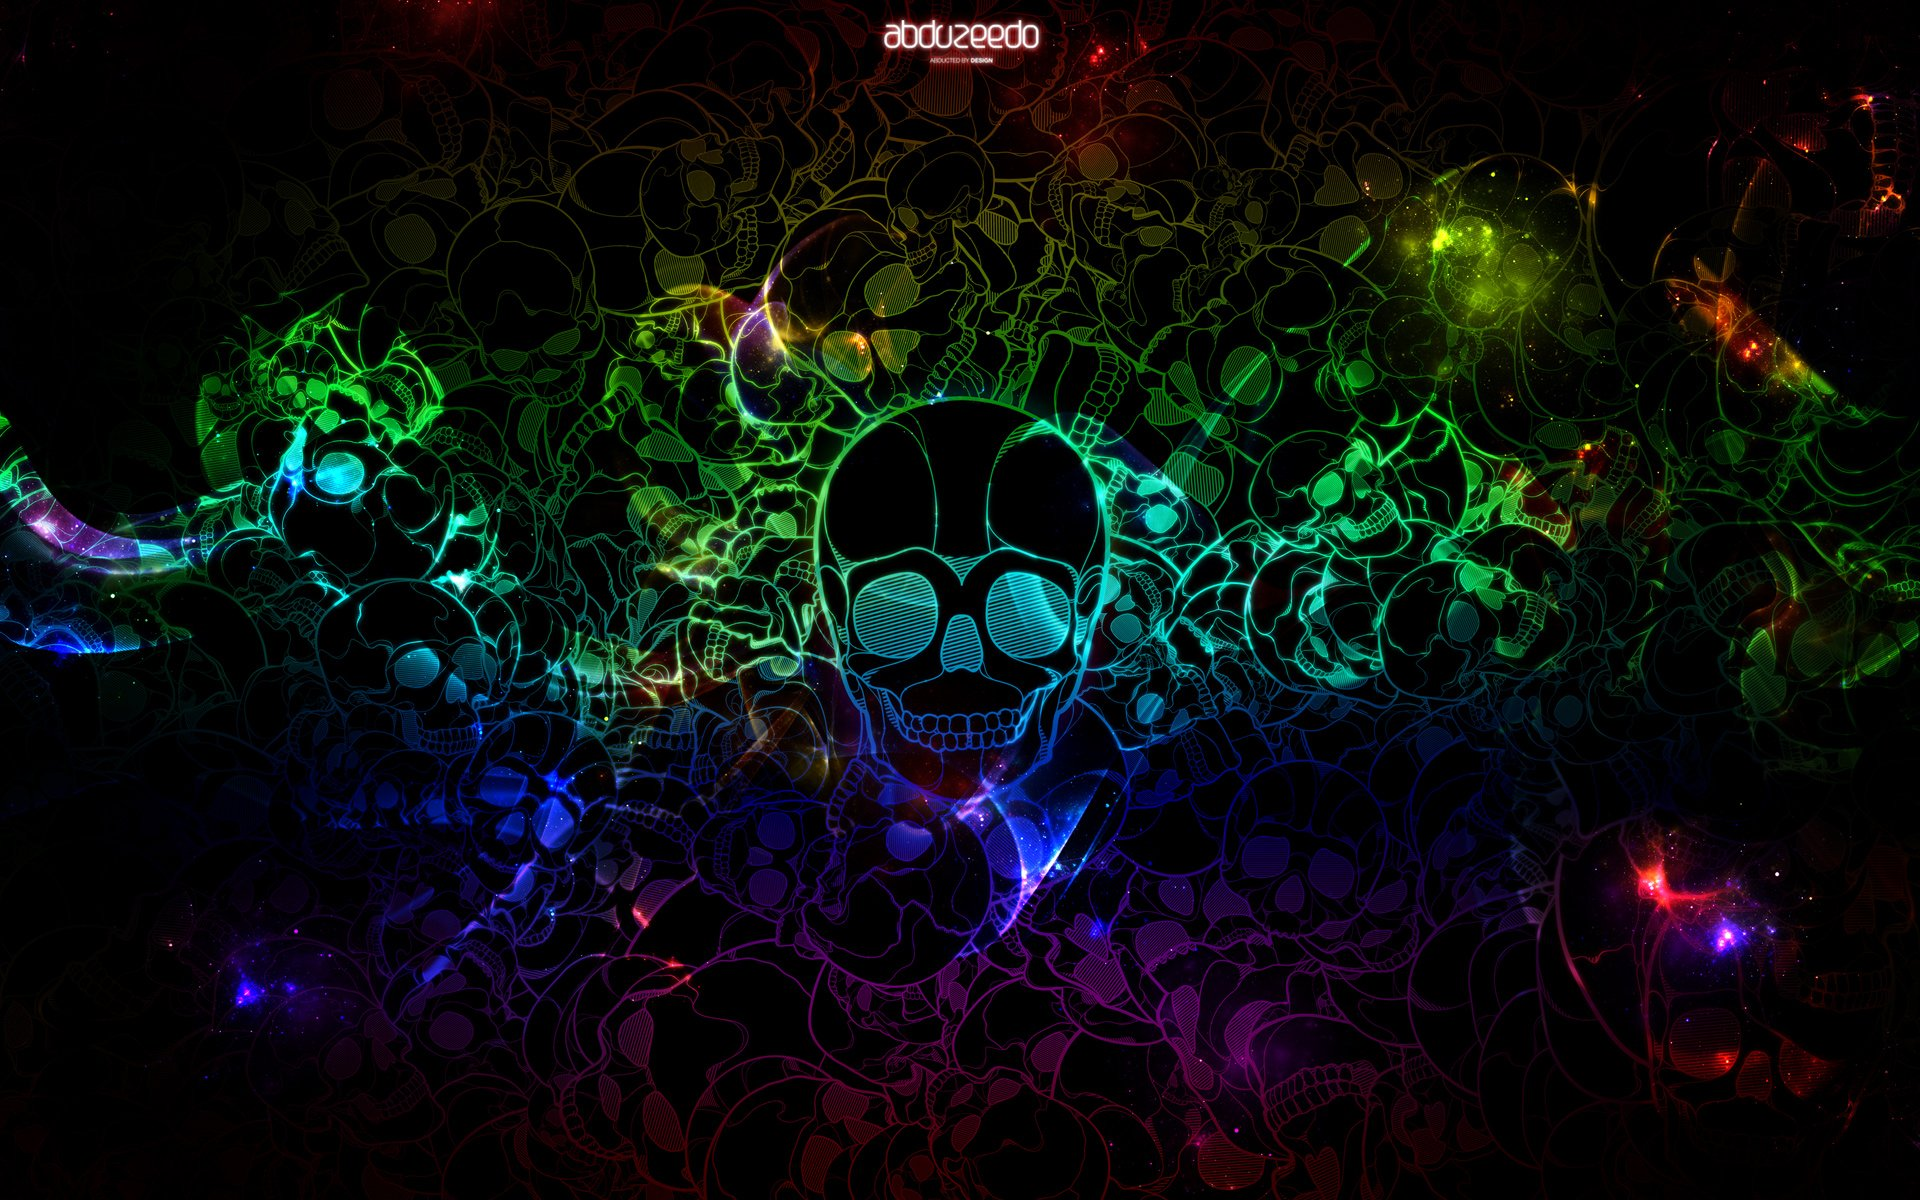 Skull Wallpapers is a hi res Wallpaper for pc desktopslaptops 1920x1200